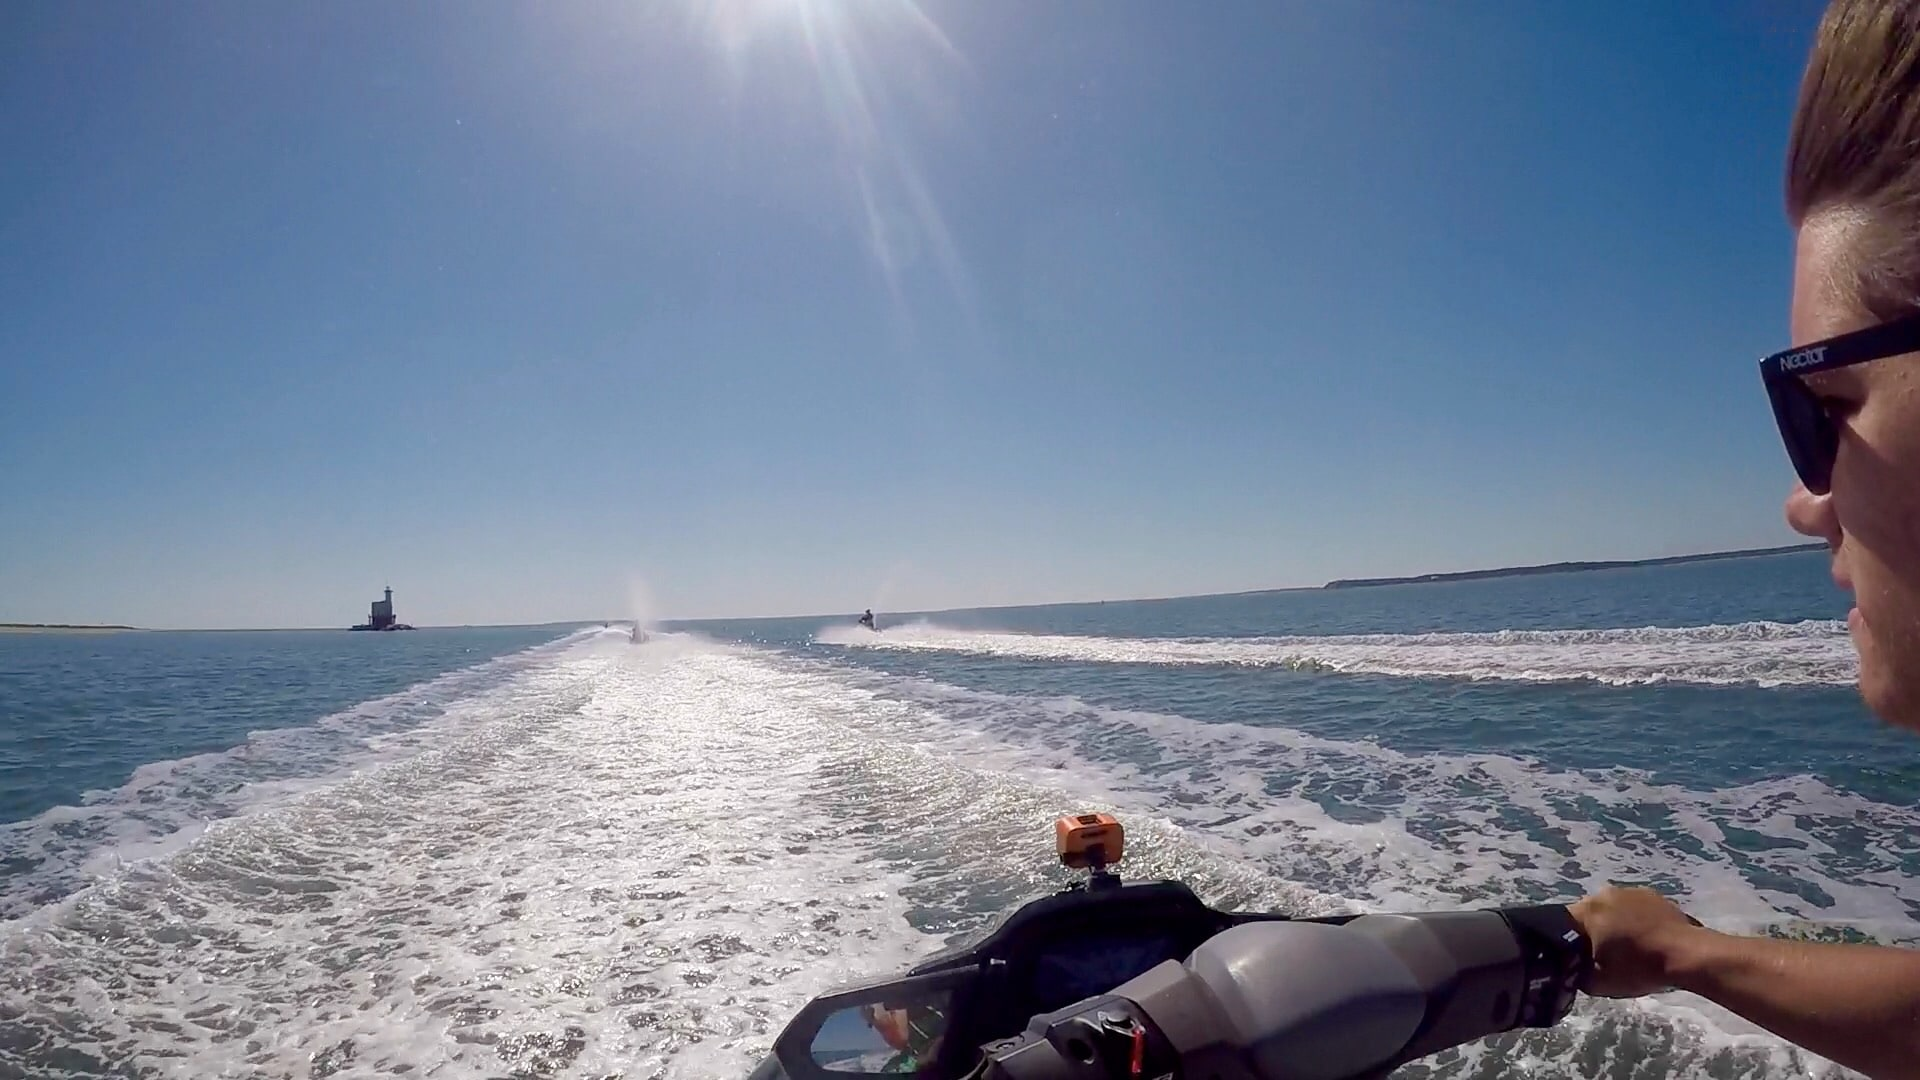 Jet Ski Ride with Peconic Water Sports in Orient Bay headed towards East Hampton, Long Island, New York